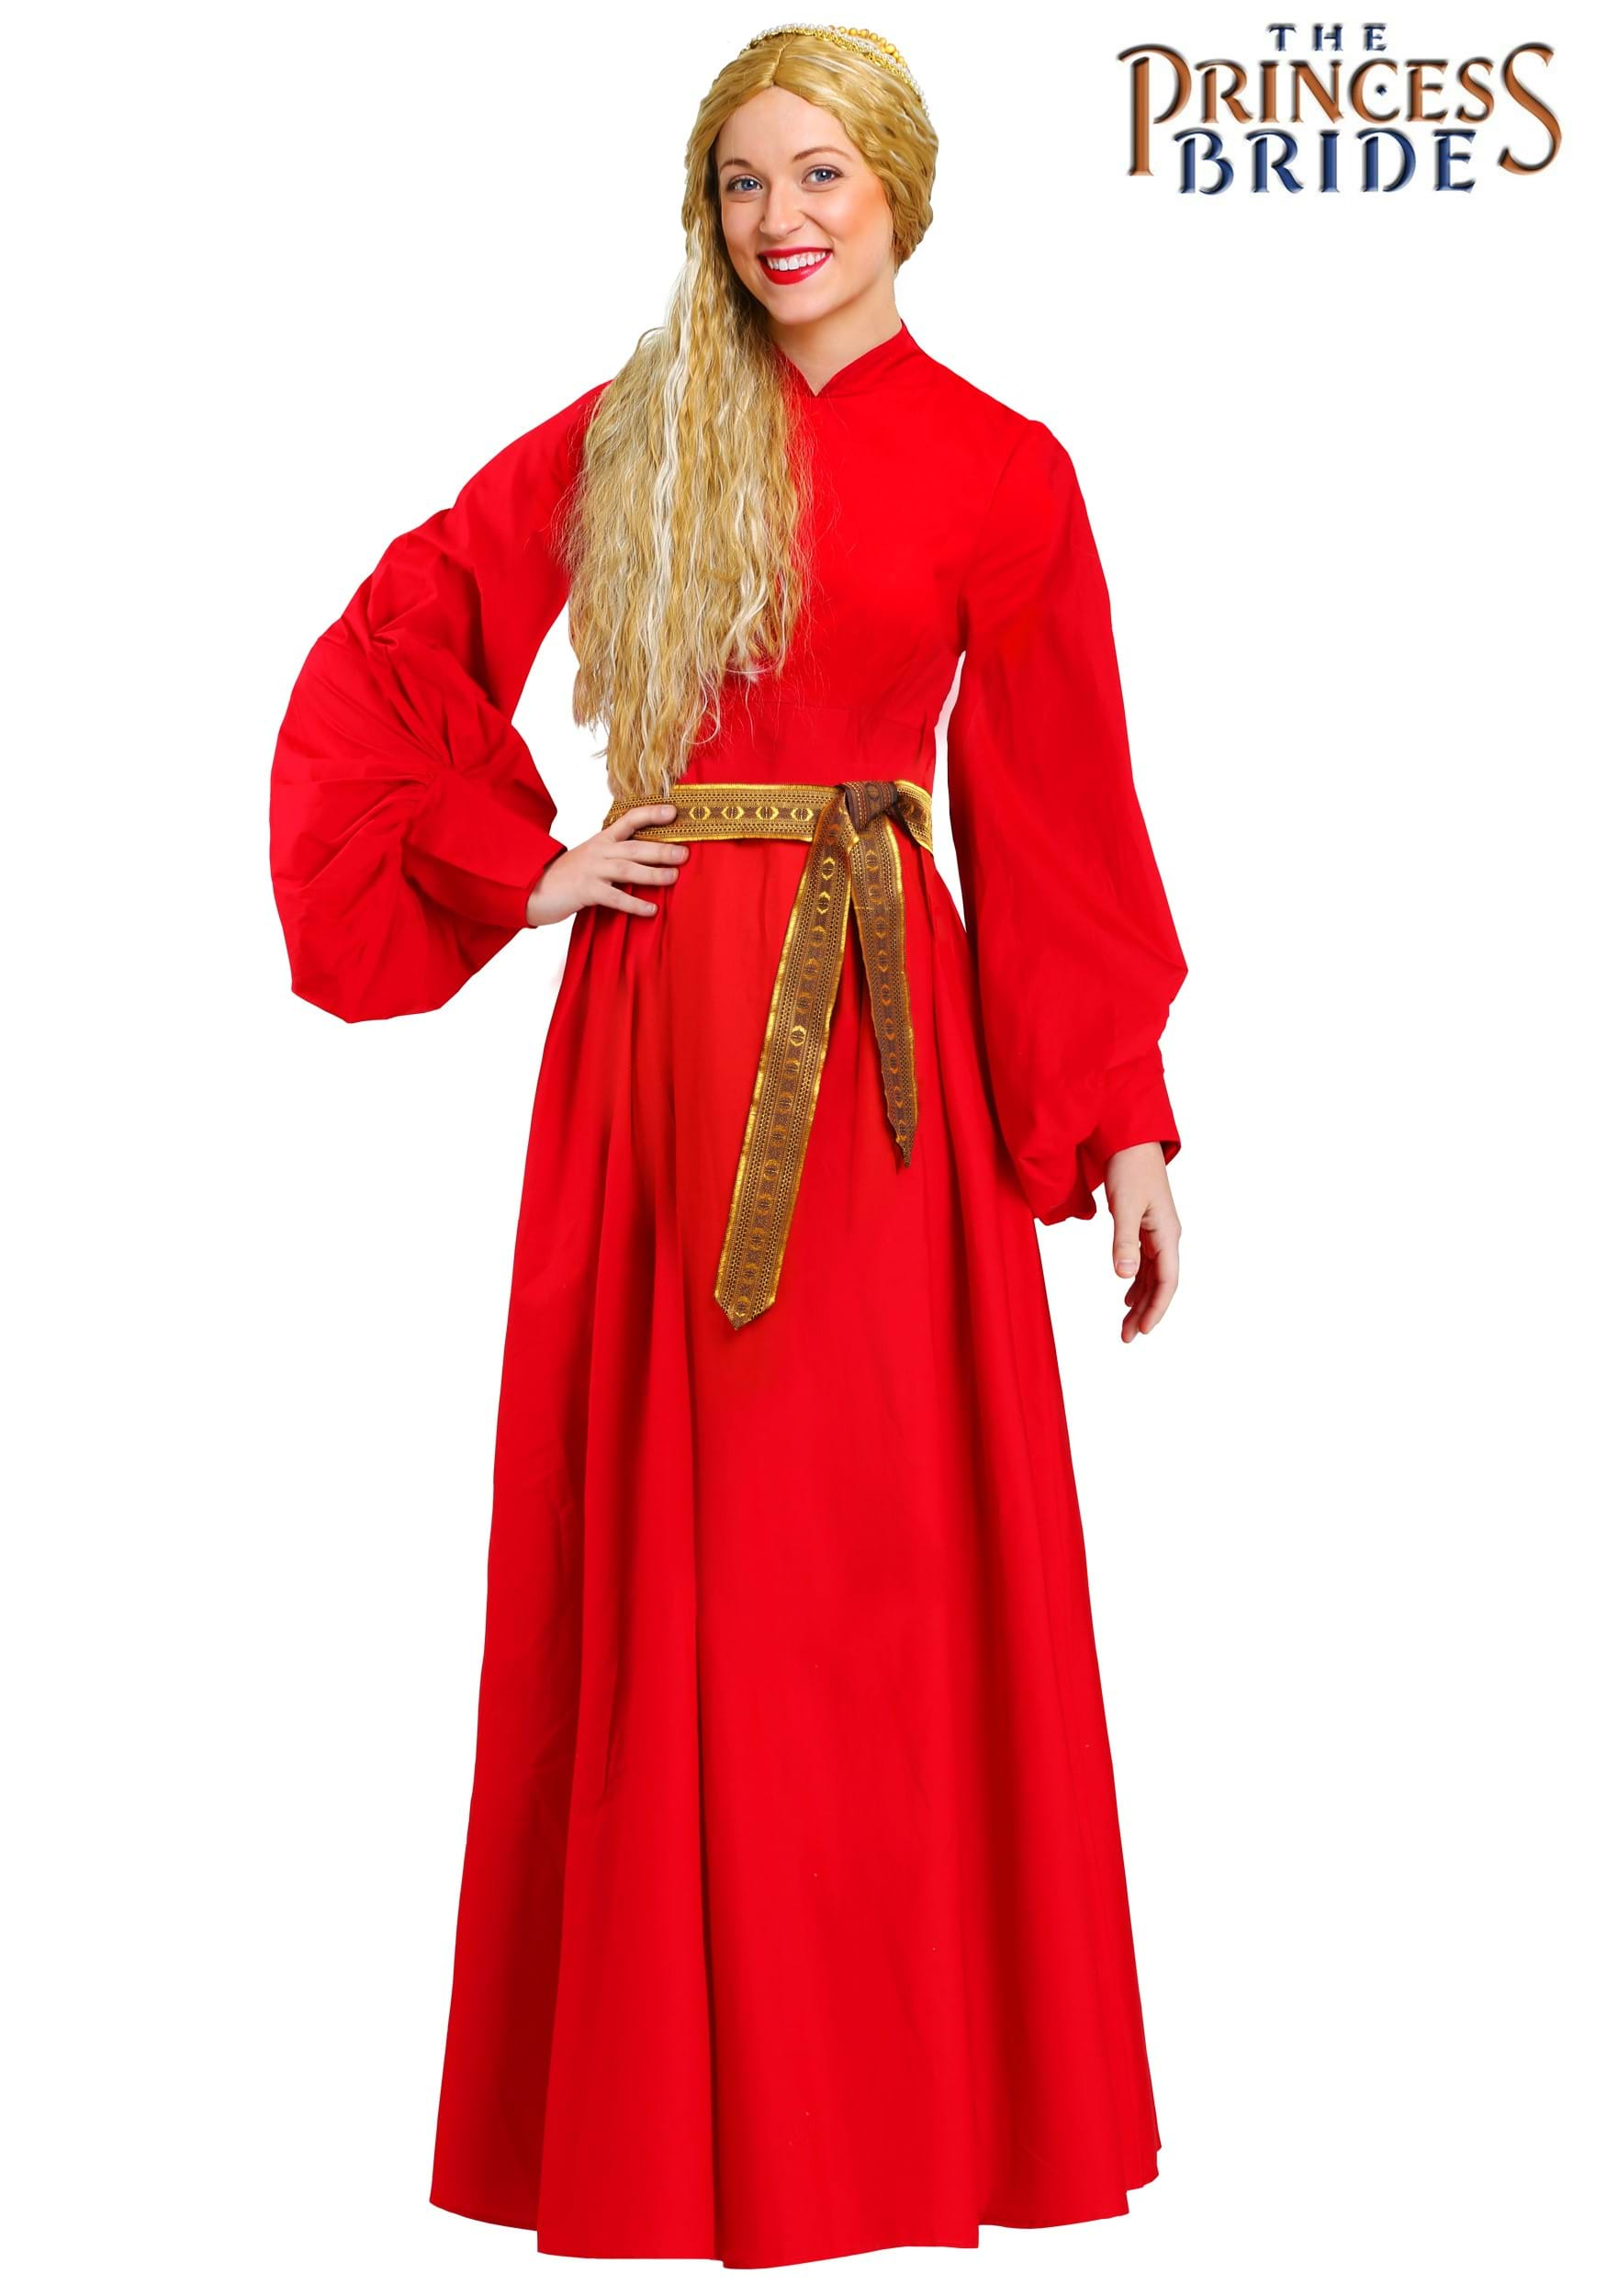 WOMEN'S PRINCESS BRIDE BUTTERCUP PEASANT DRESS COSTUME Red and Belt